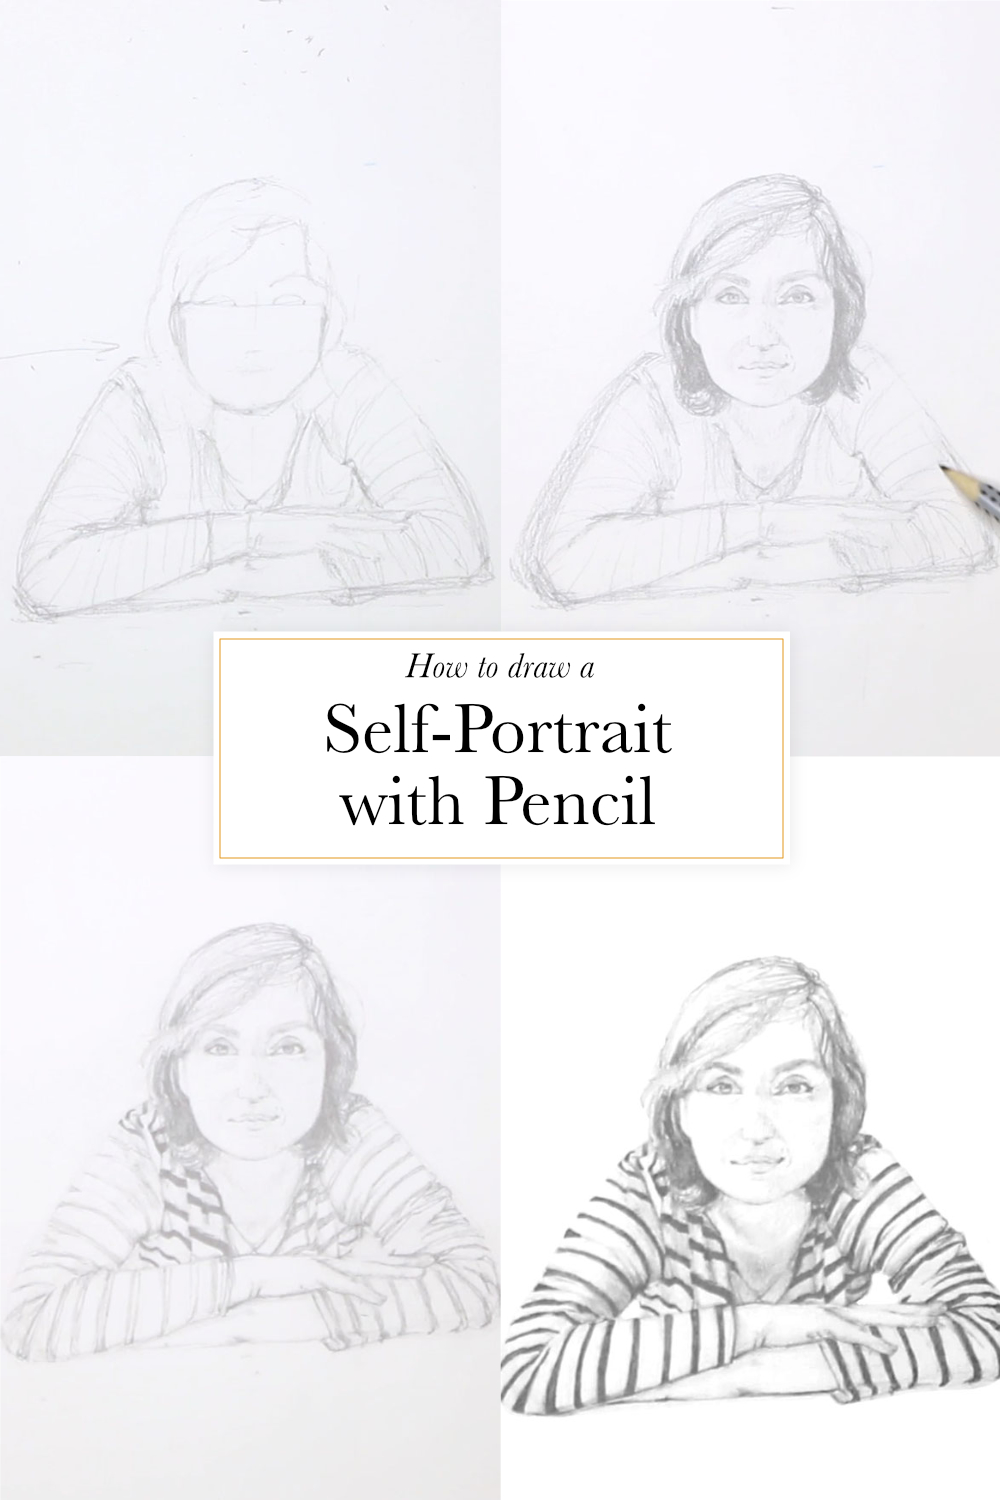 Drawing a self-portrait with pencil  | The Daily Atelier